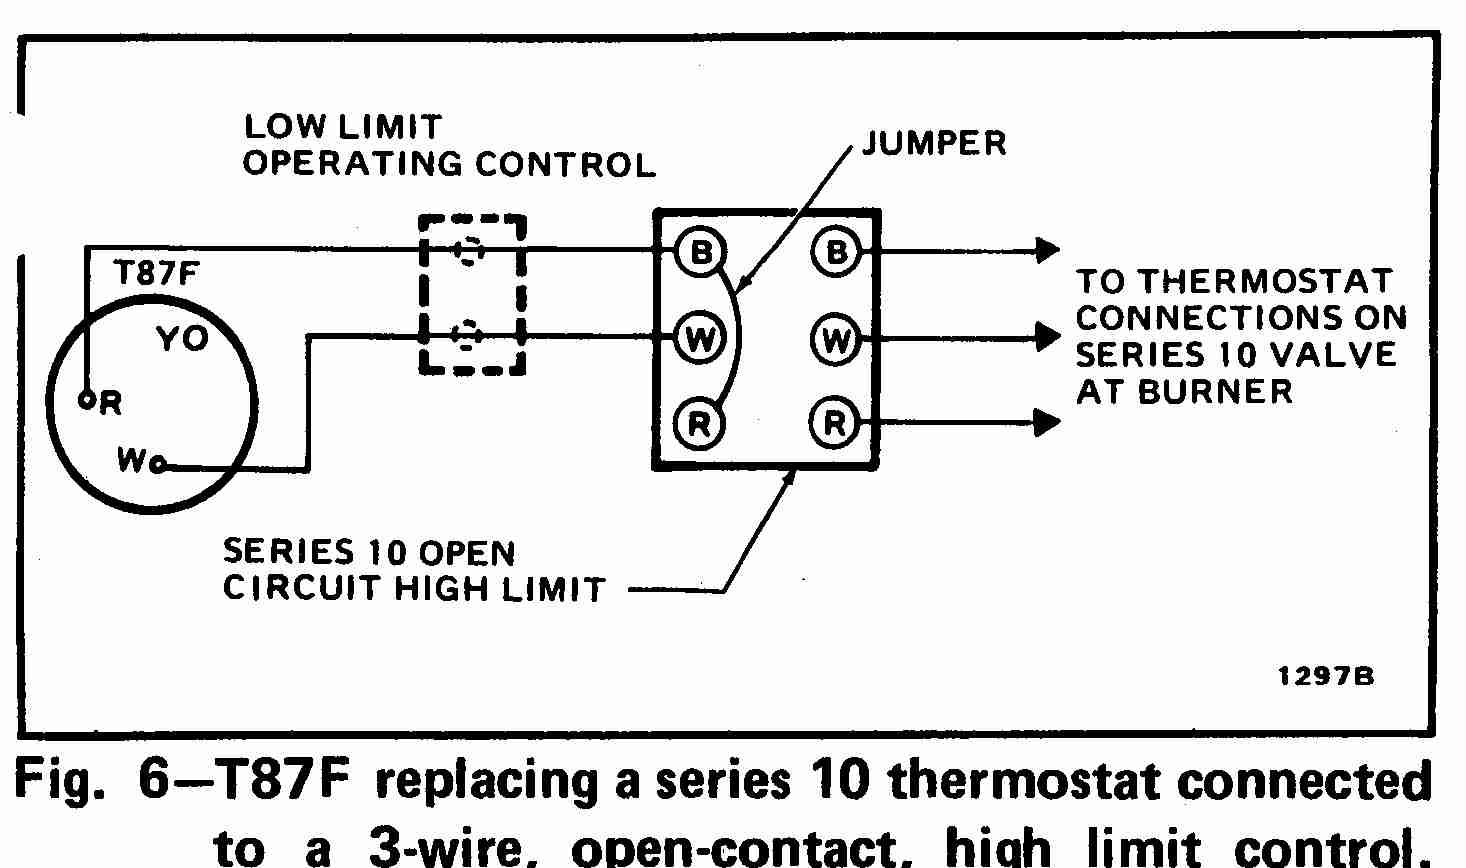 Room thermostat wiring diagrams for HVAC systems – Hvac Thermostat Wiring Diagrams